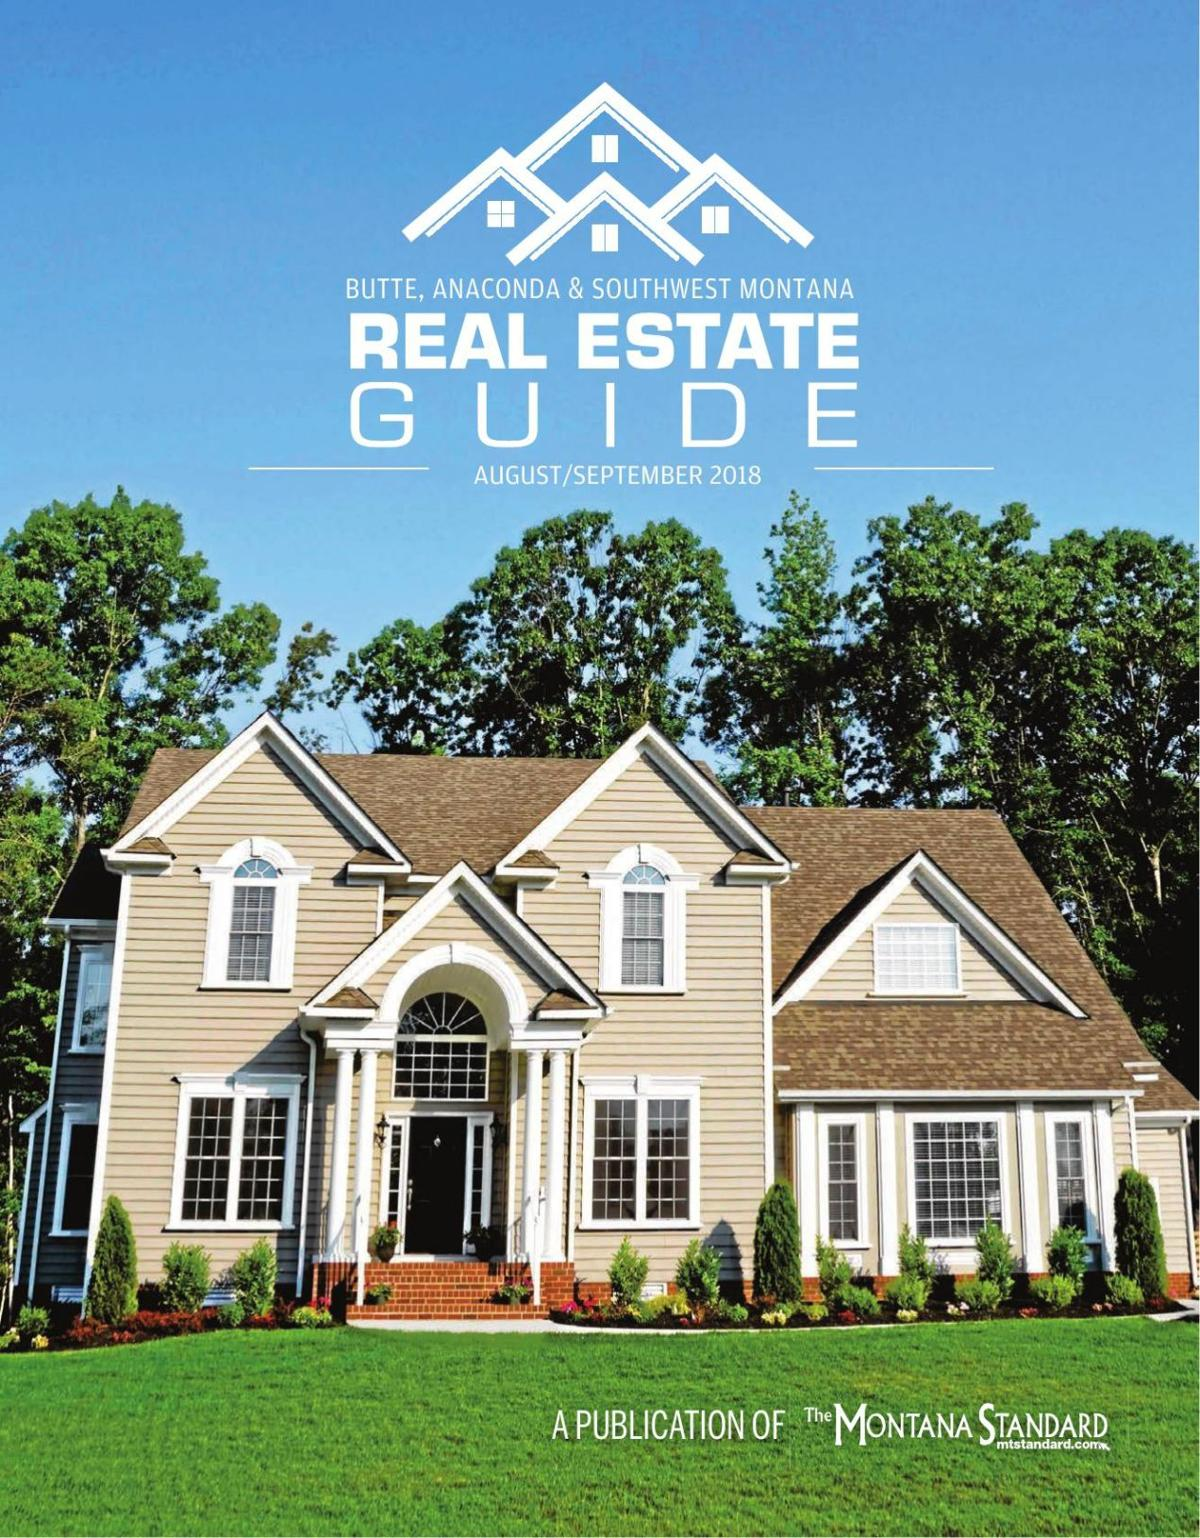 Southwest Montana Real Estate Guide August-September Edition